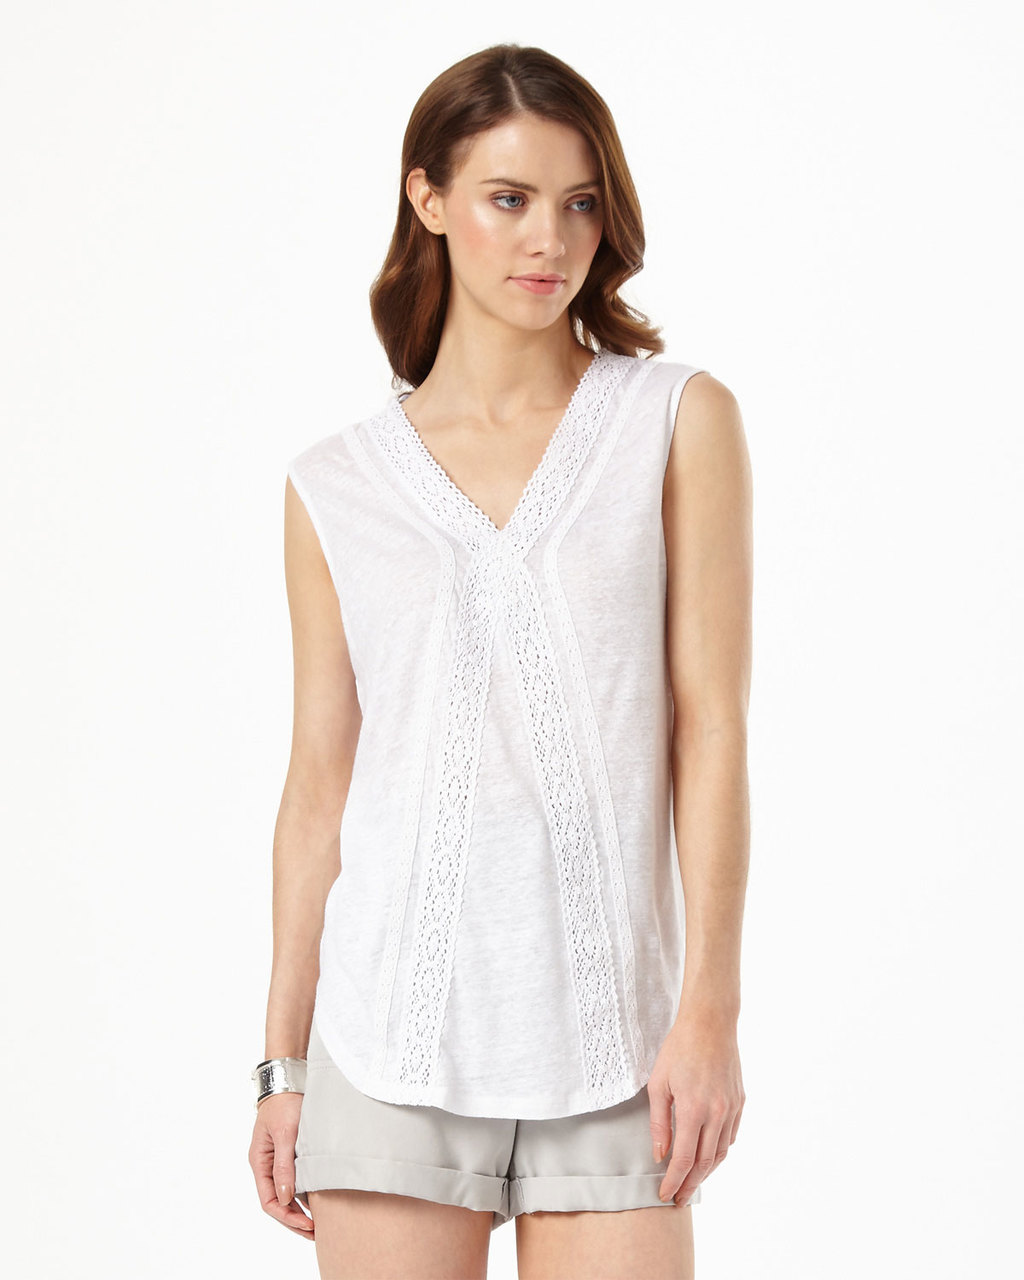 Bobbi Crochet Top - neckline: v-neck; pattern: plain; sleeve style: sleeveless; style: vest top; predominant colour: white; occasions: casual; length: standard; fibres: linen - mix; fit: body skimming; sleeve length: sleeveless; texture group: cotton feel fabrics; pattern type: fabric; embellishment: lace; season: s/s 2016; wardrobe: highlight